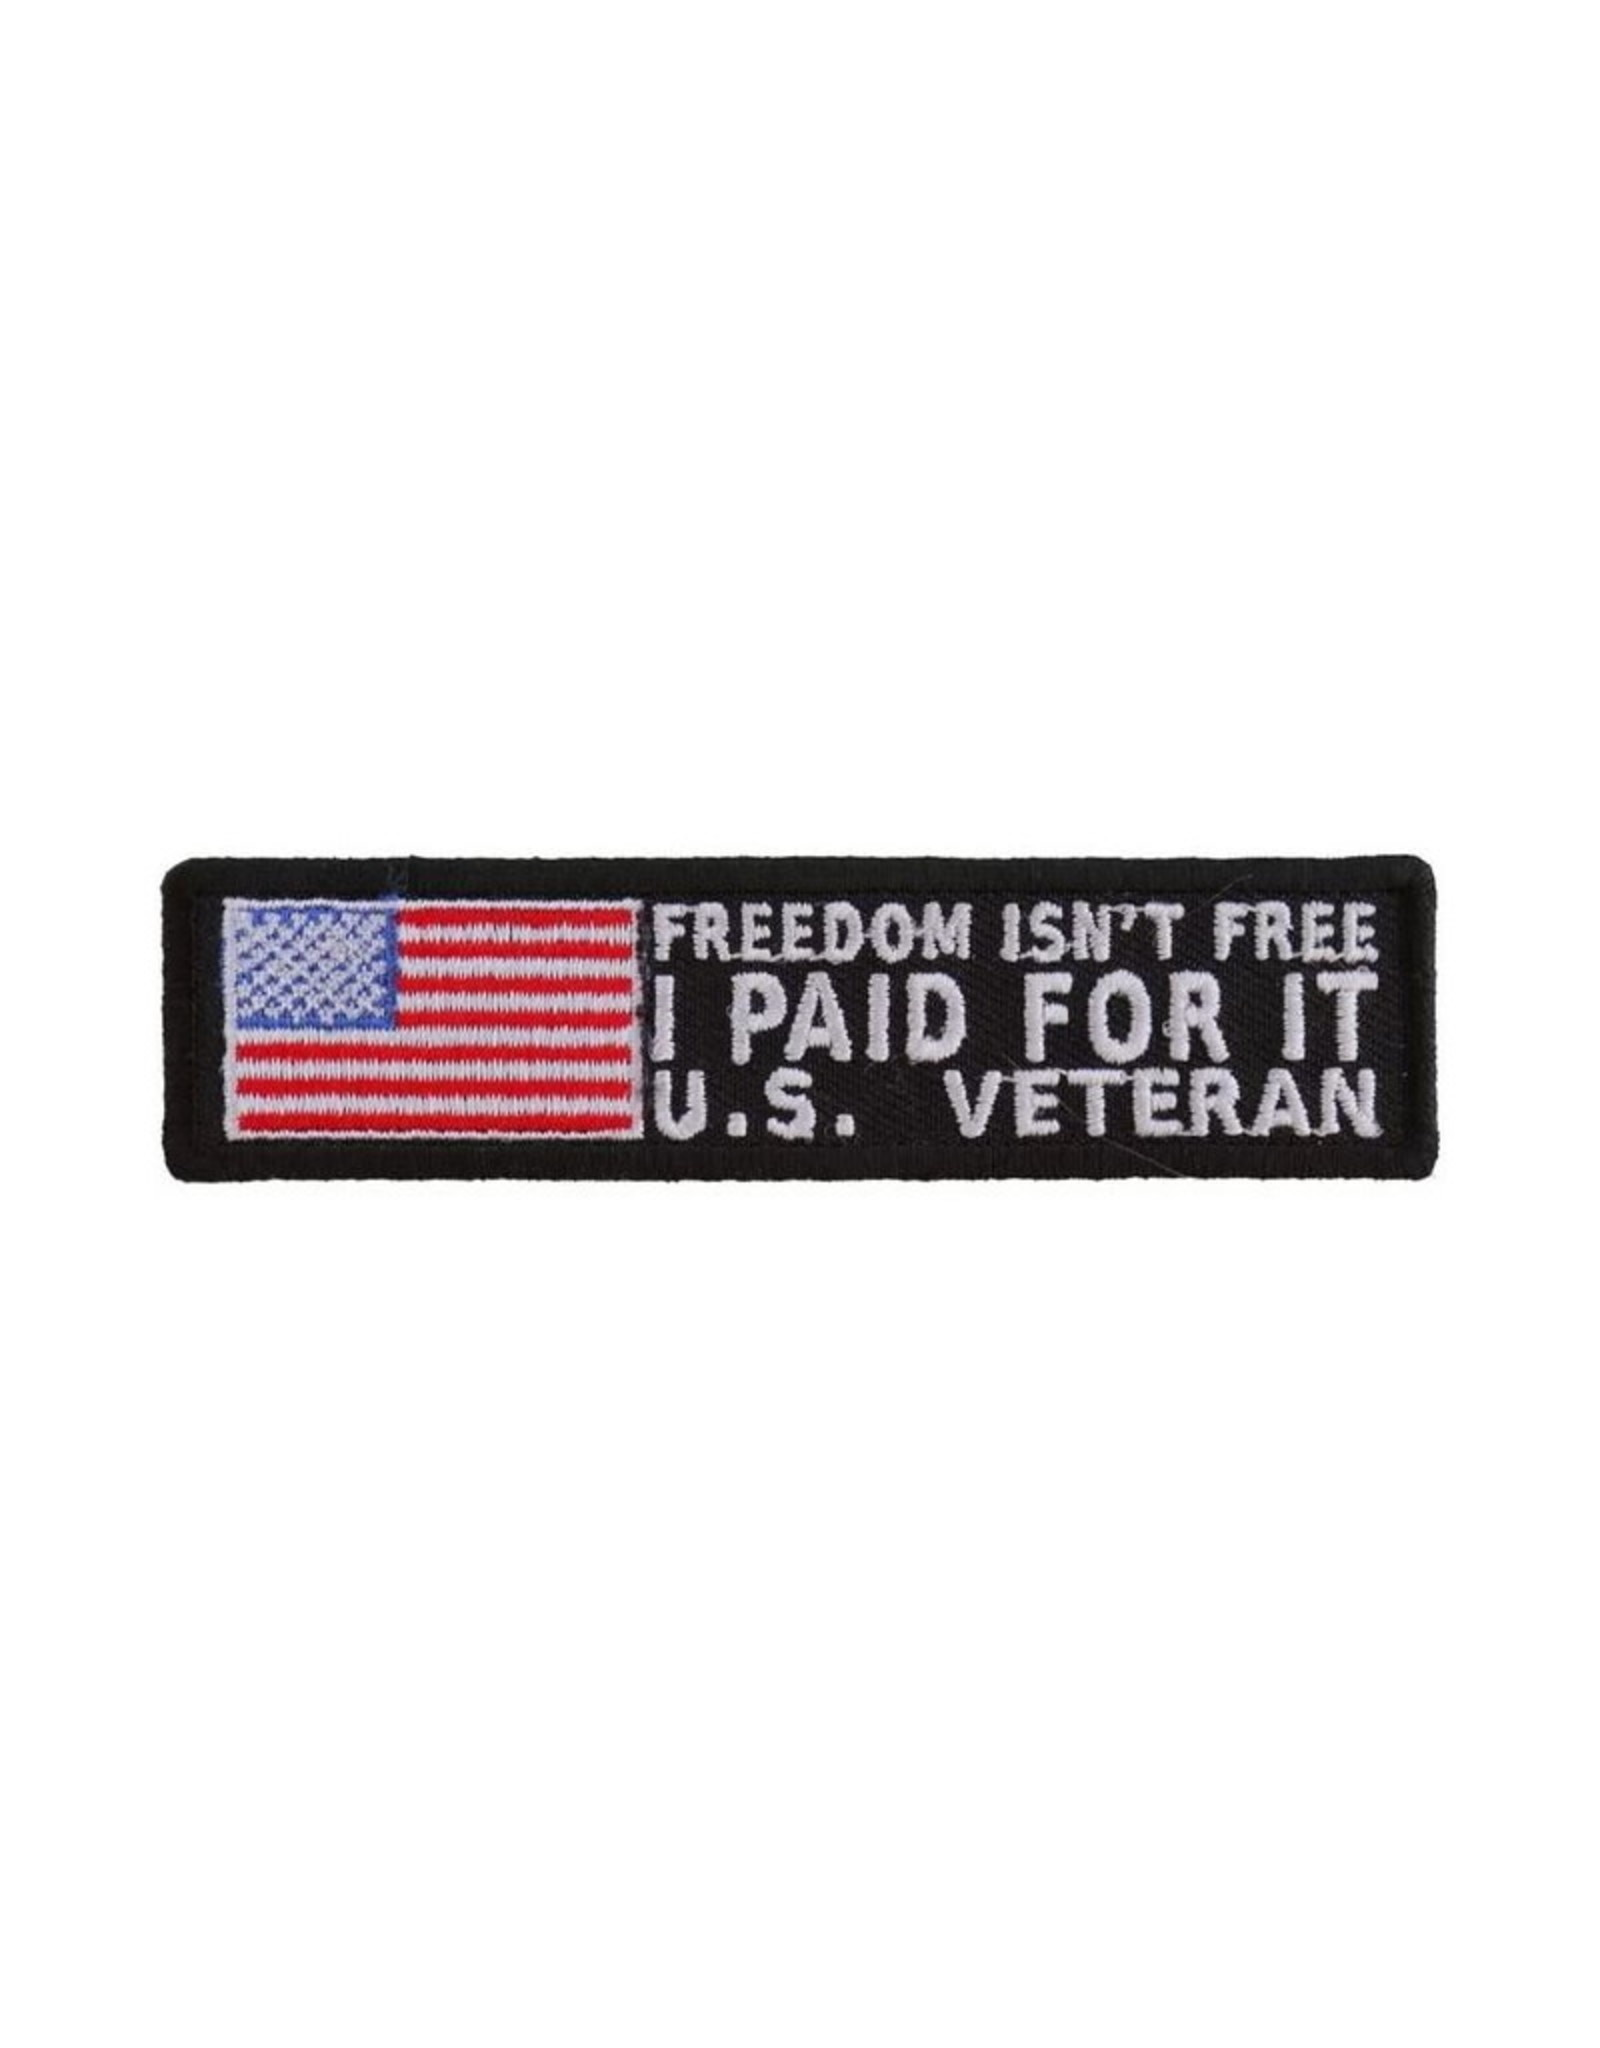 """MidMil Embroidered Freedom Isn't Free - I Paid For It U.S. Veteran Patch 4"""" wide x 1"""" high Black"""